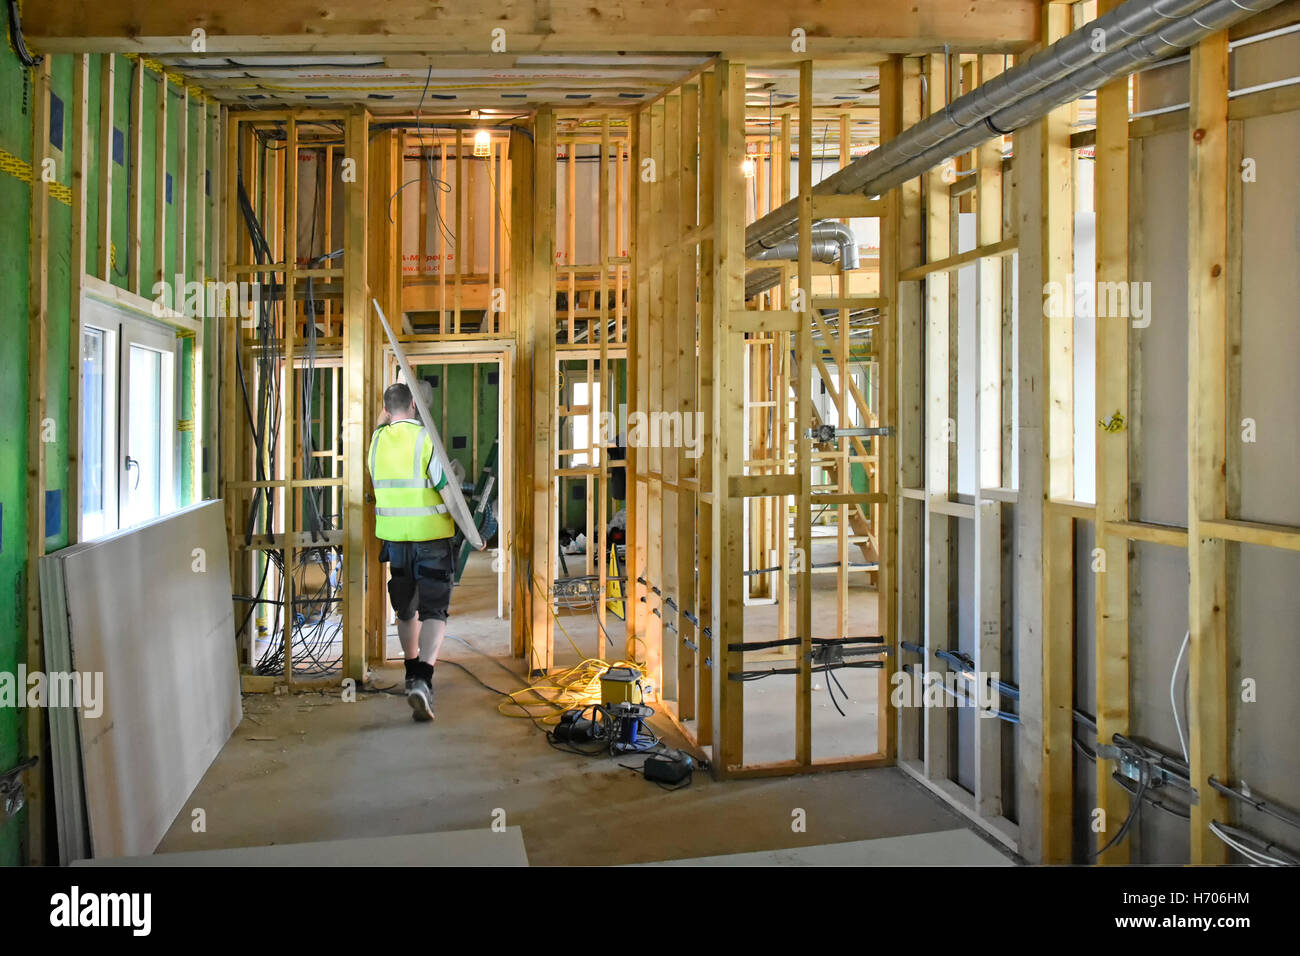 Interior of new UK energy efficient Passive House showing ducting electrics & timber stud partition wall worker - Stock Image